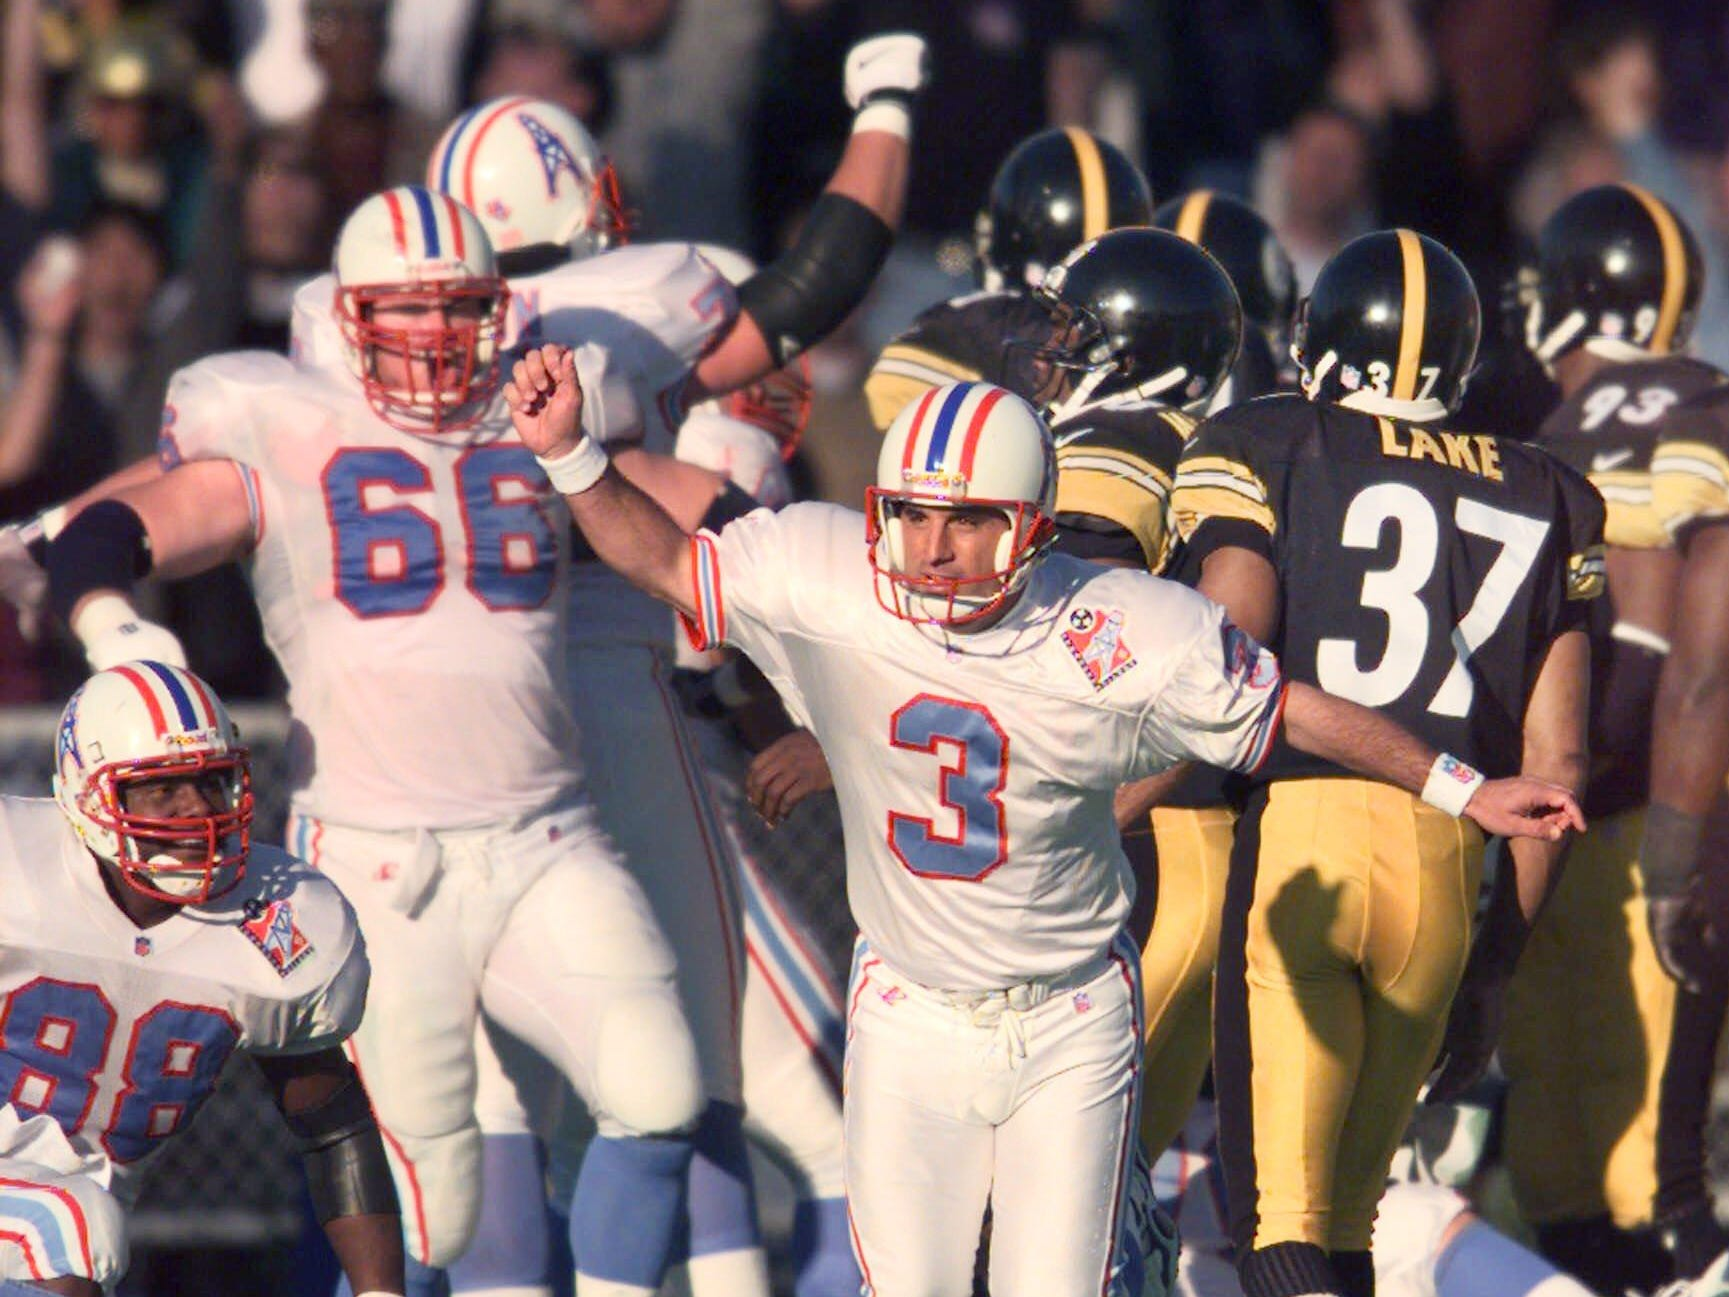 Tennessee Oilers kicker Al Del Greco (3) celebrates his fourth-quarter field goal to put the Oilers ahead of the Pittsburgh Steelers Nov. 15, 1998, in Nashville. The Oilers then scored a touchdown on an onside kick to beat the Steelers 23-14.